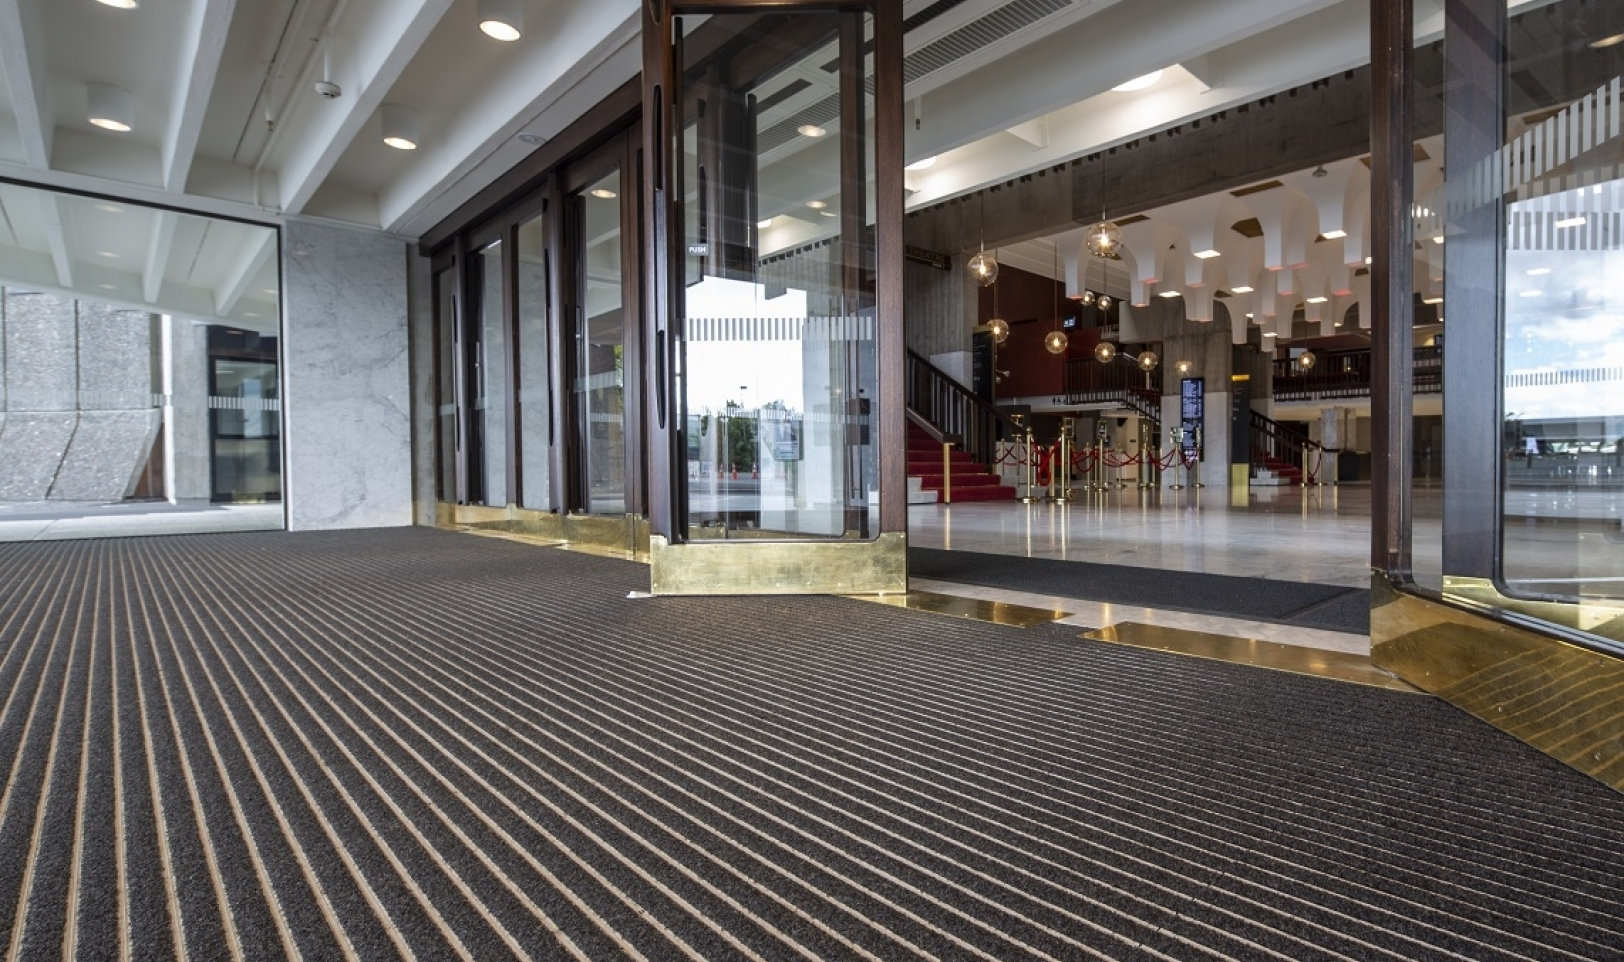 Entrance Matting - CoralTread - Christchurch Town Hall